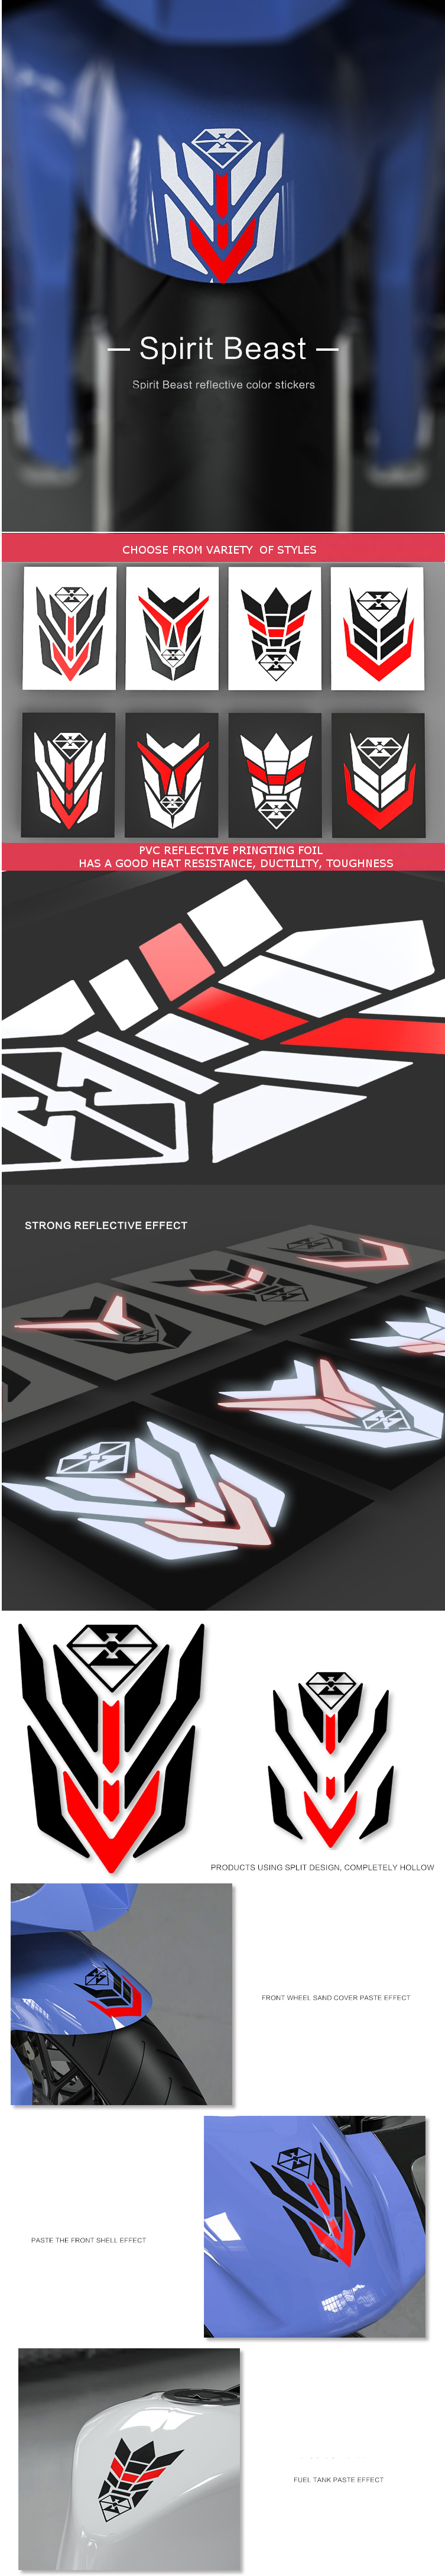 Reflective Motorcycle Decorative Sticker Scooter Bike Waterproof Car Styling Shell Repair